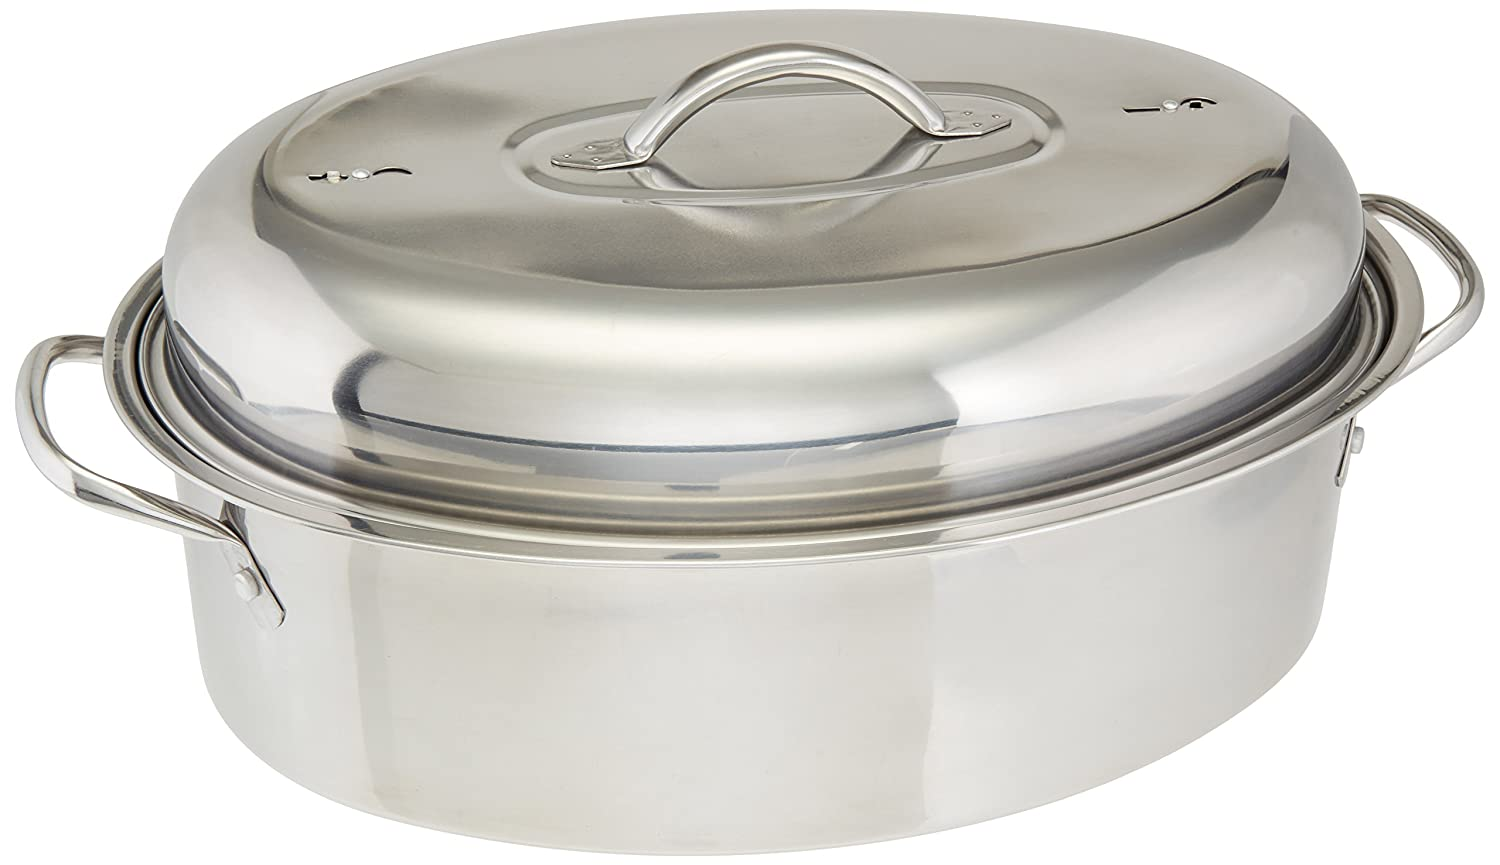 ExcelSteel 574 All-in-One Stainless High Dome Roaster and Fish Poacher, 23-Pound Cook Pro Inc.